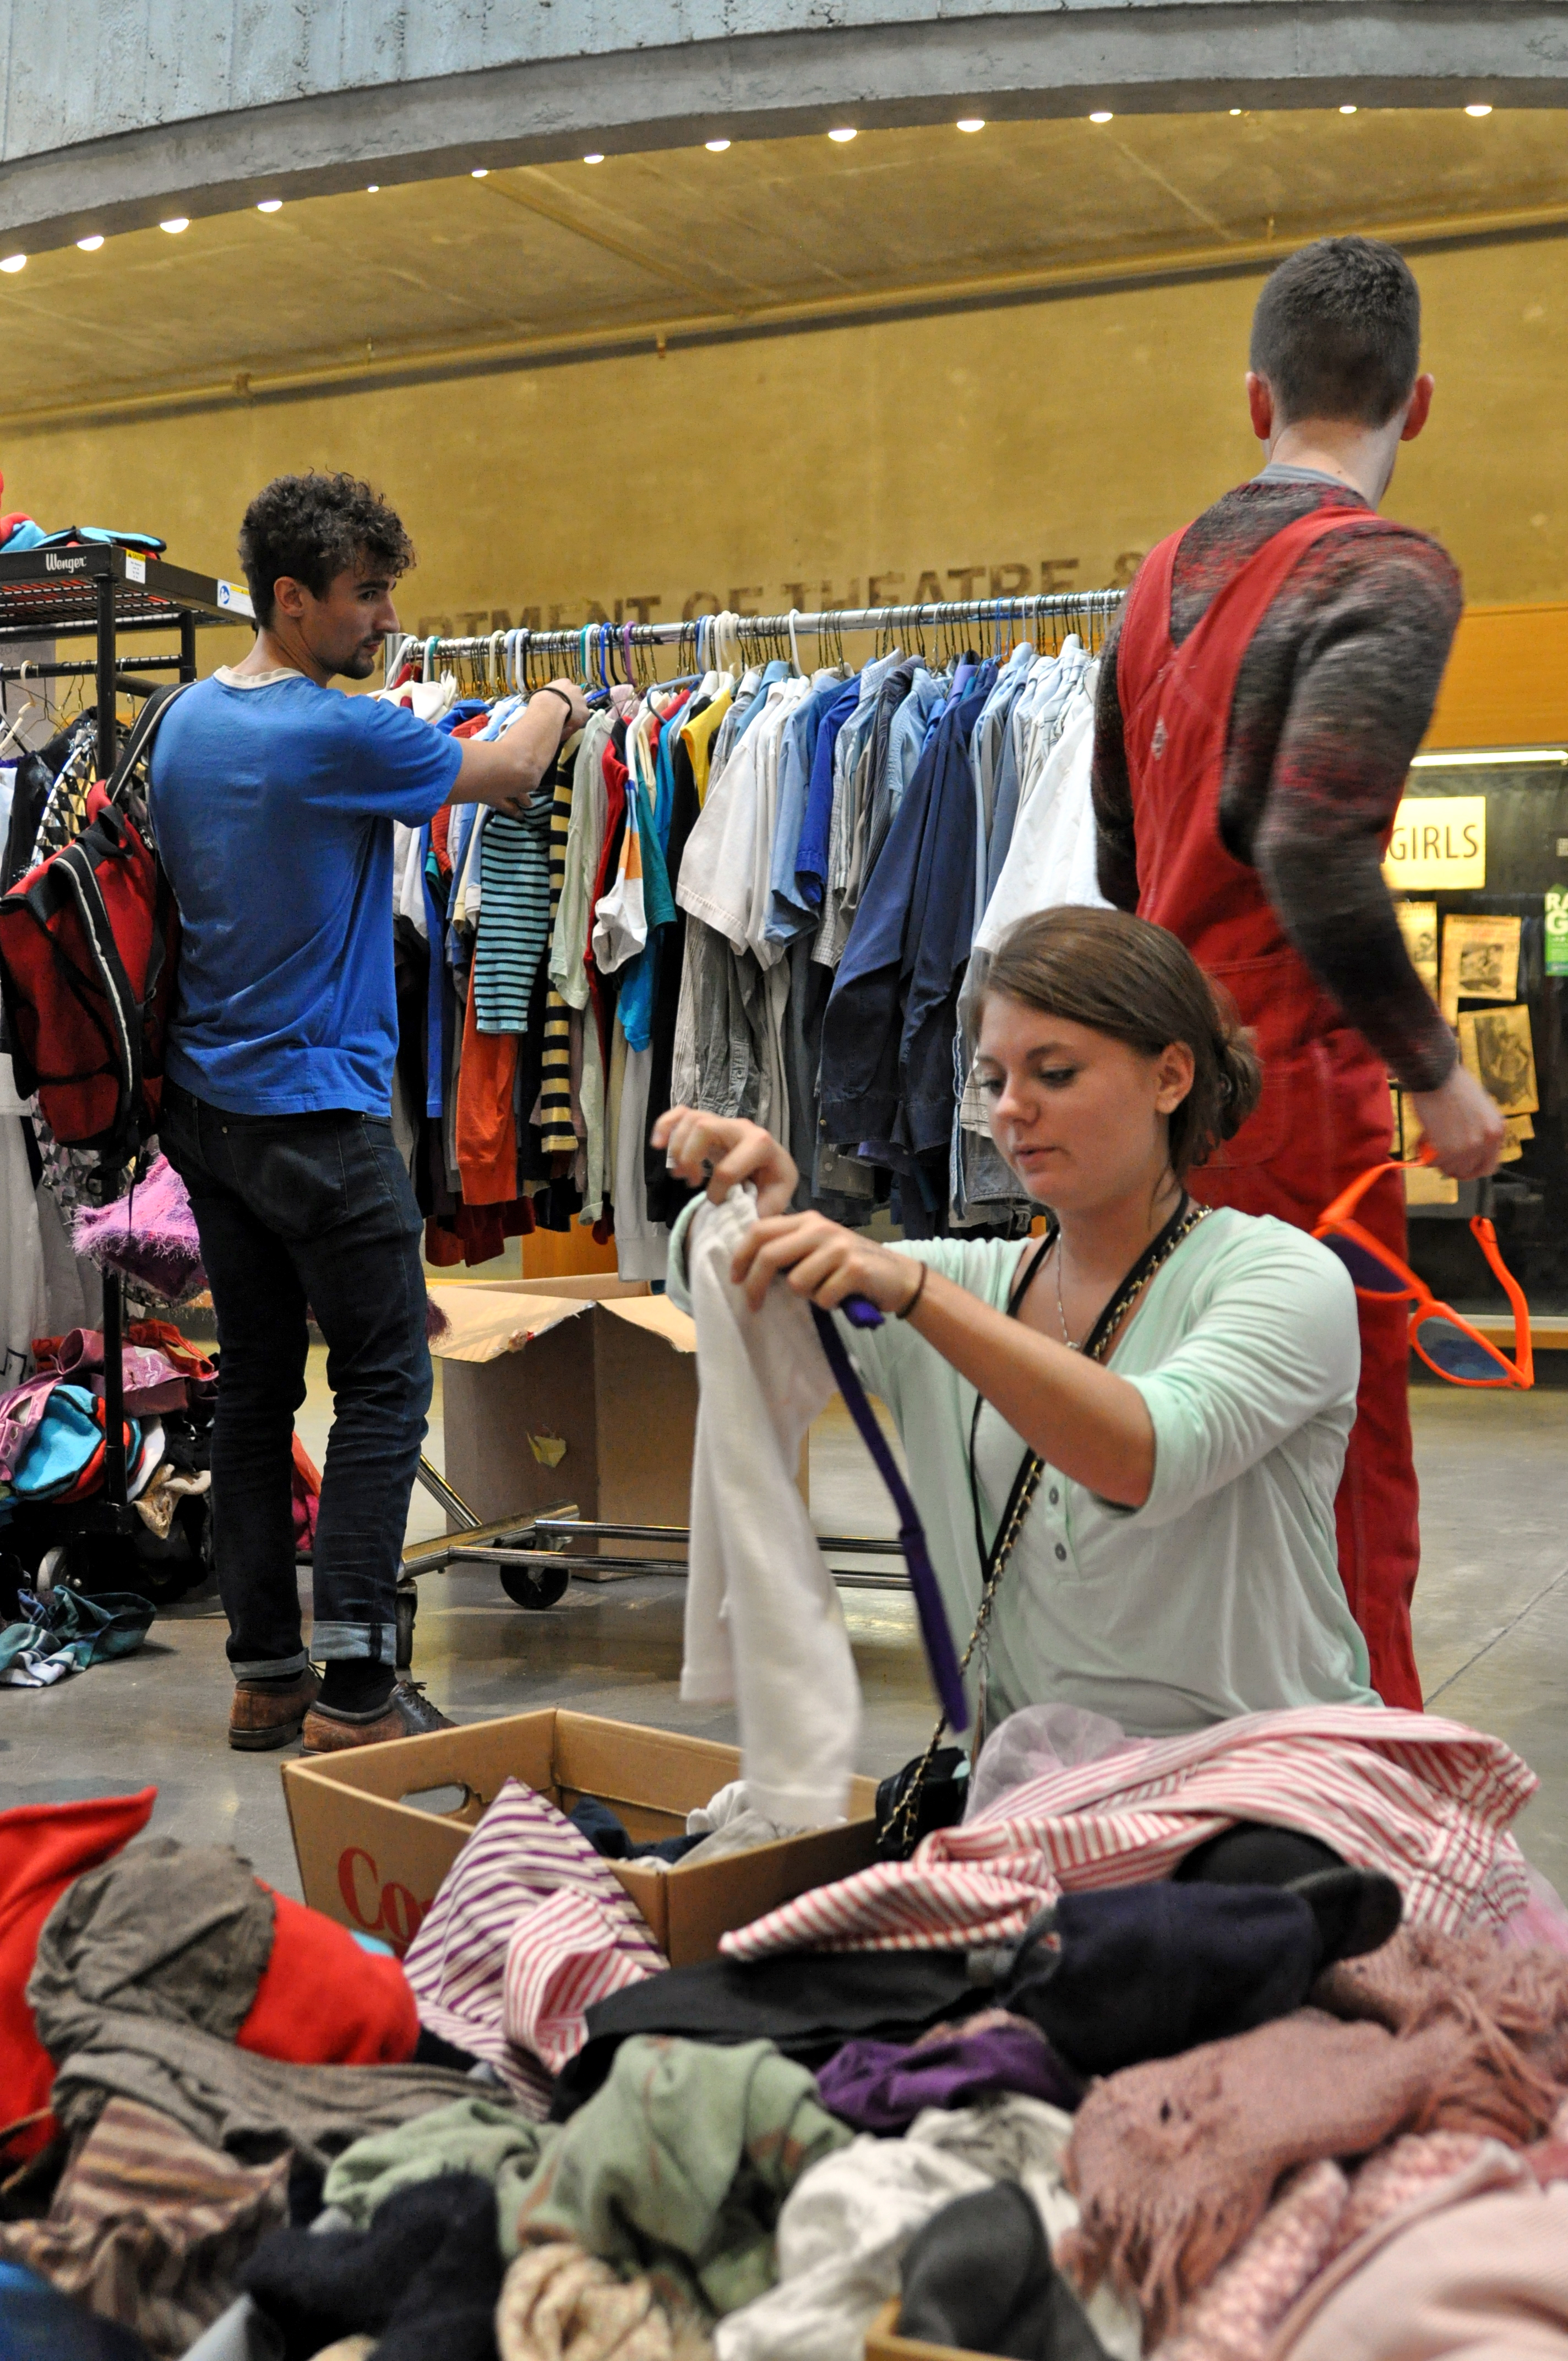 Allison Kelley, junior, looks through a box of costumes at the costume sale in the NFAC. Photo by Emily Hoffmann.